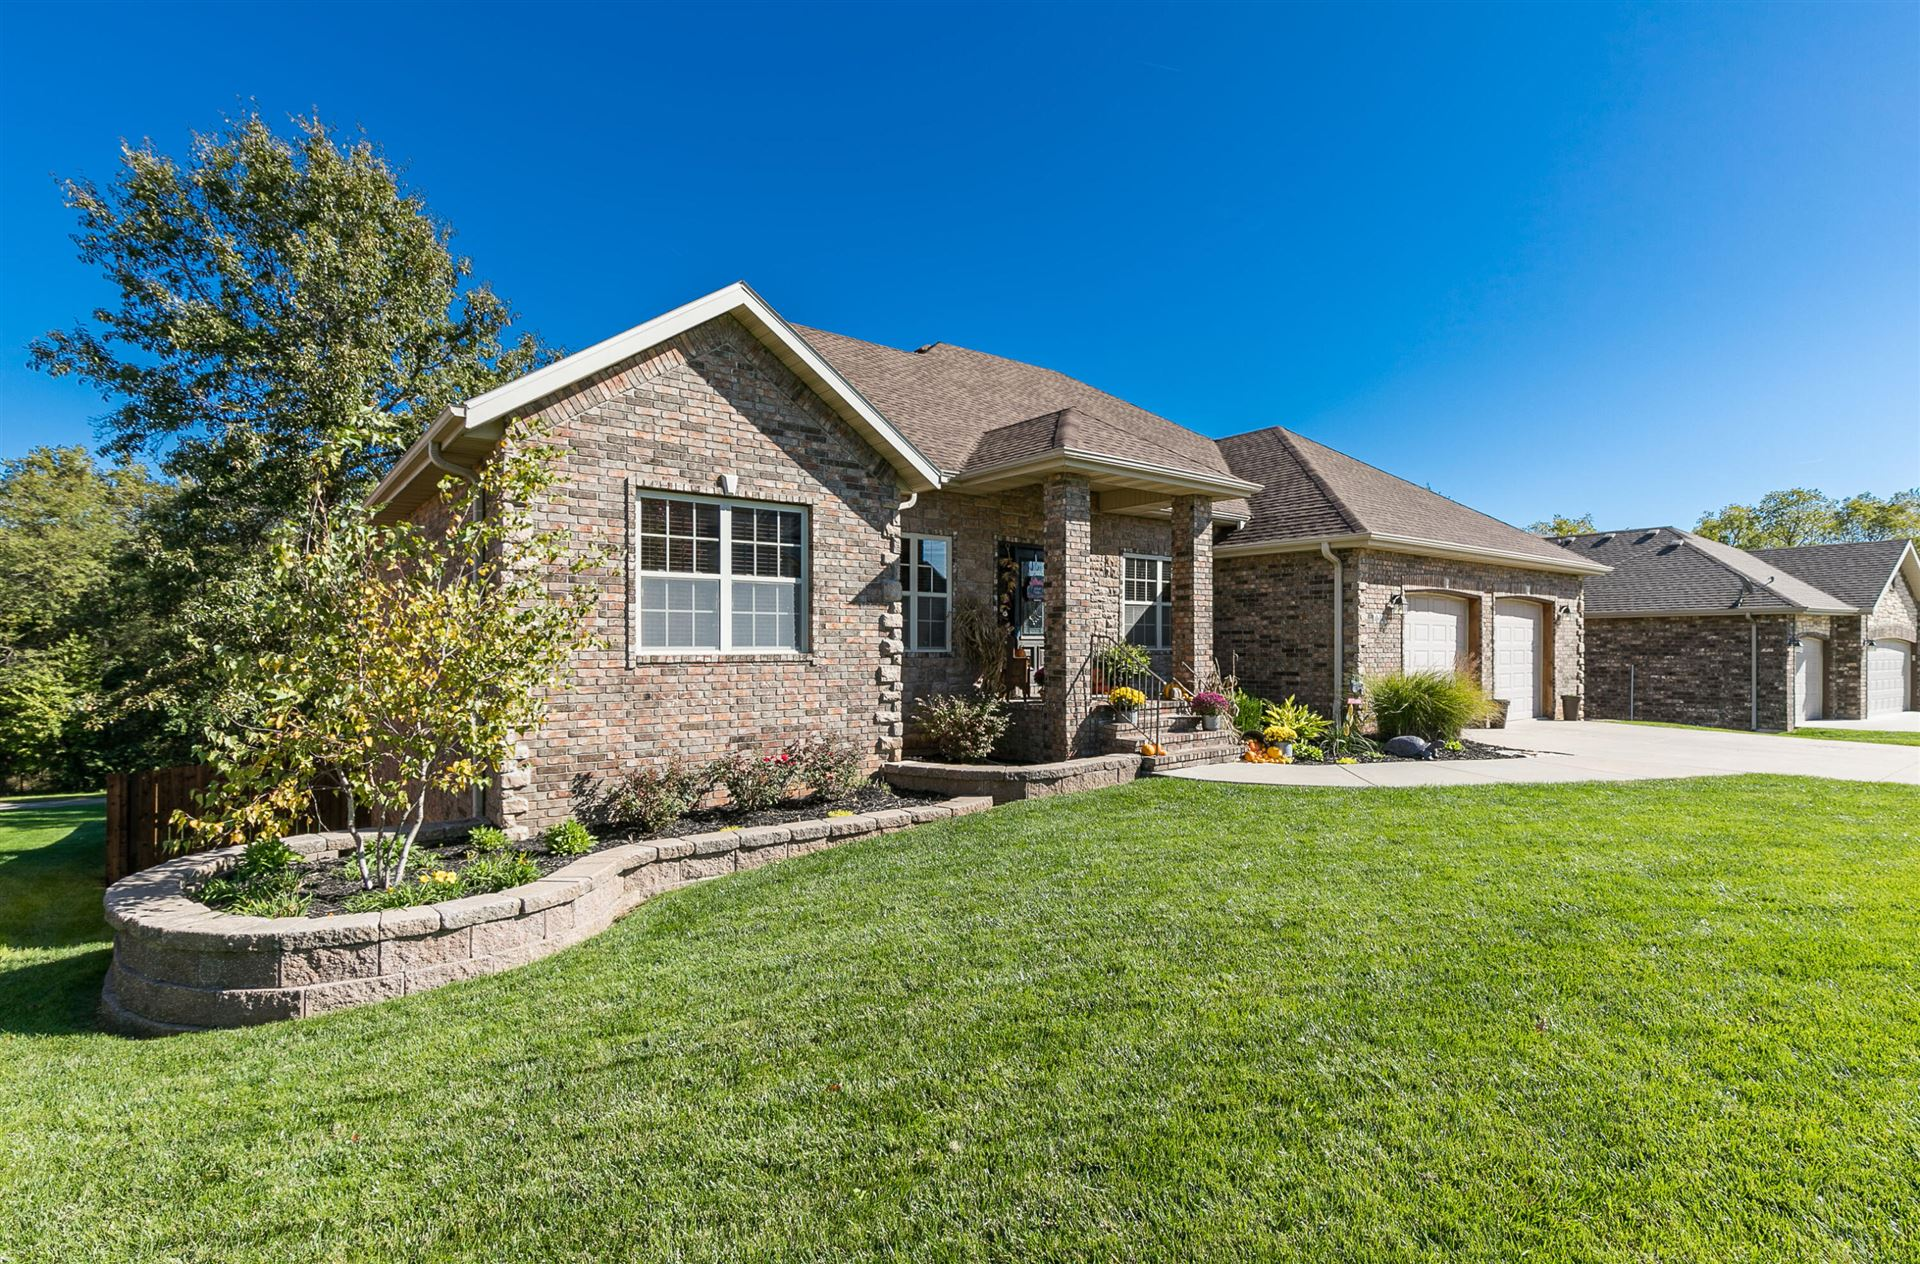 Photo of 4649 West Silo Hills Drive, Springfield, MO 65802 (MLS # 60203738)